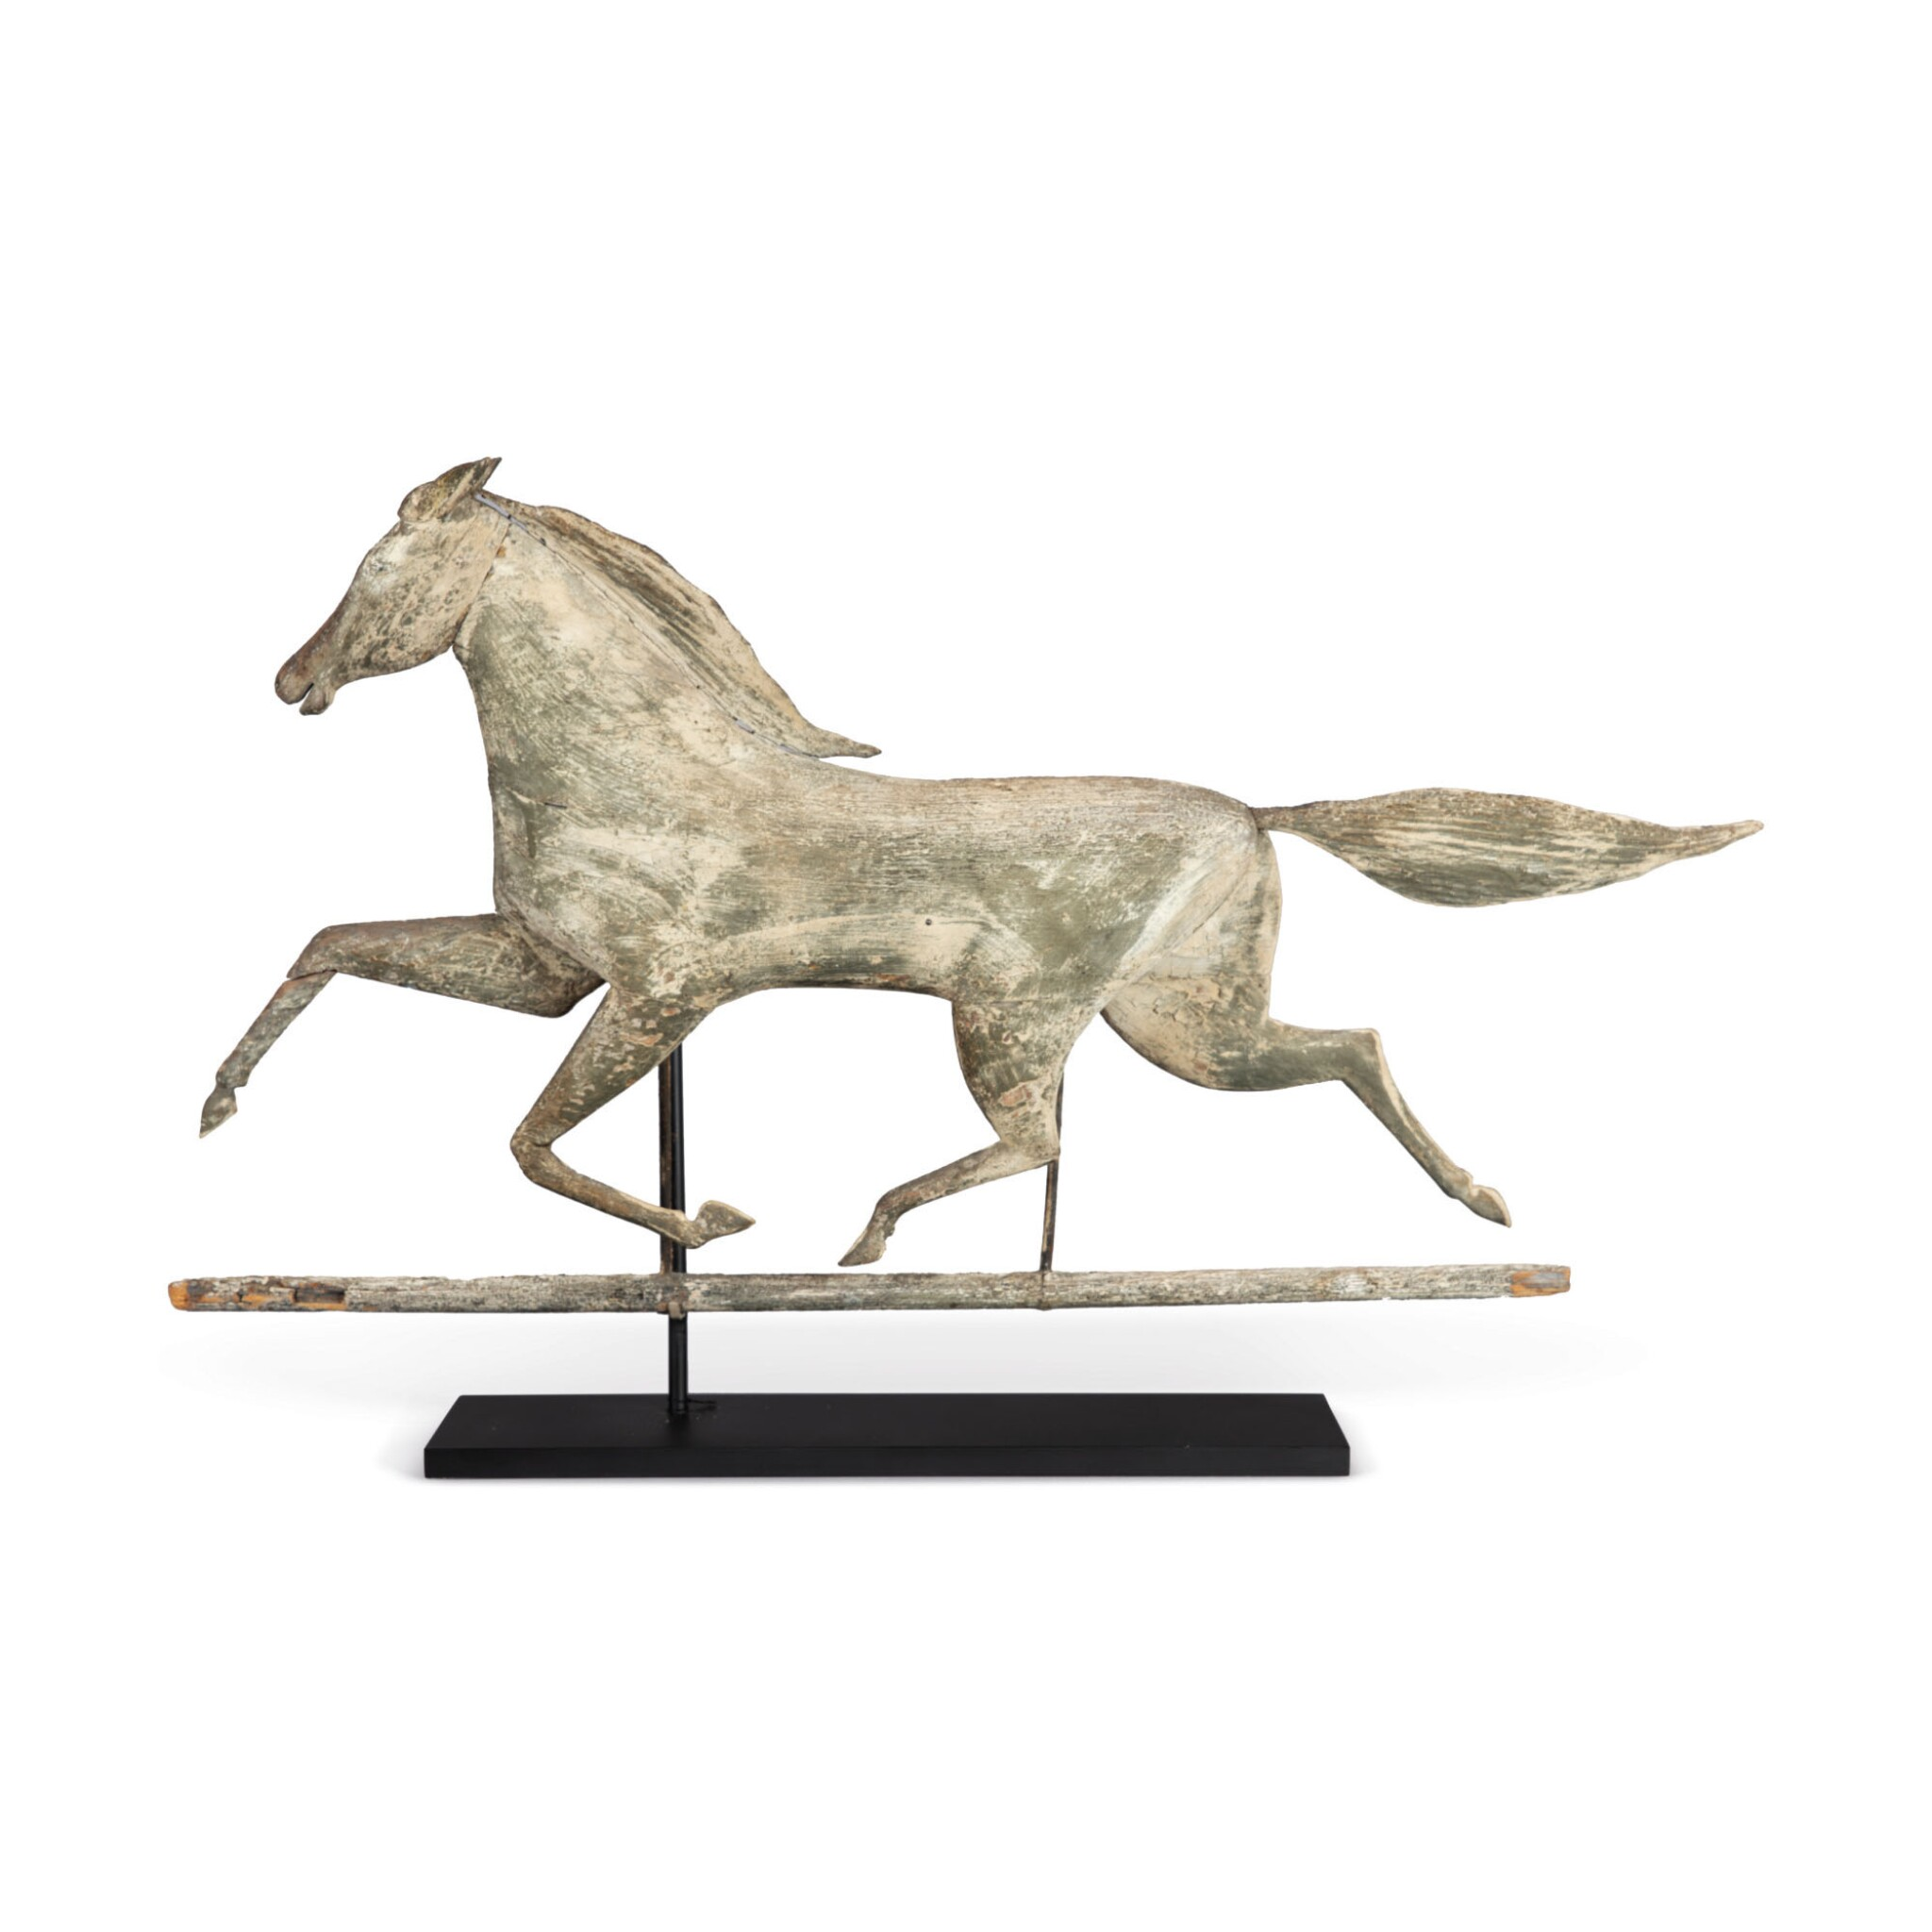 View full screen - View 1 of Lot 3. VERY FINE AND RARE CARVED FULL BODIED PINE HORSE WEATHERVANE, NORTHEASTERN UNITED STATES, LATE 19TH CENTURY.